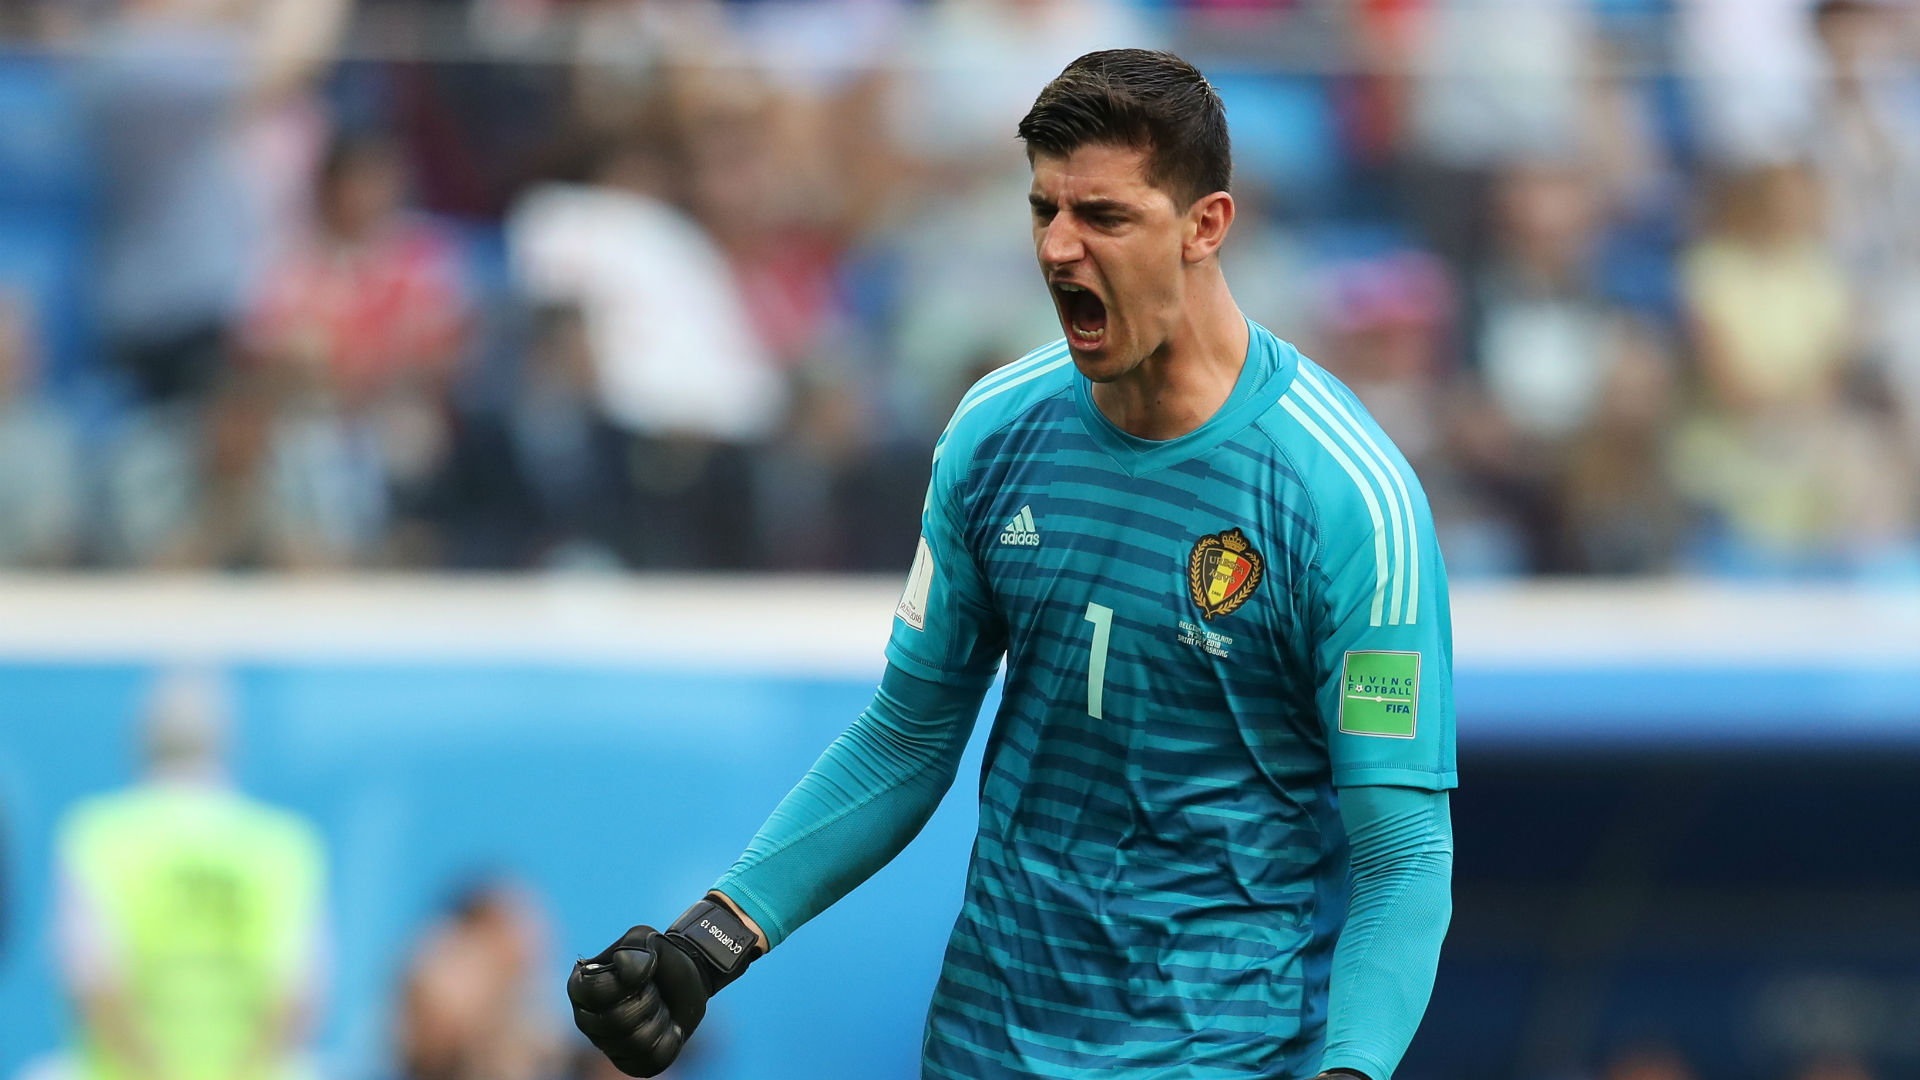 World Cup 2018: Belgium's Courtois wins Golden Glove ...